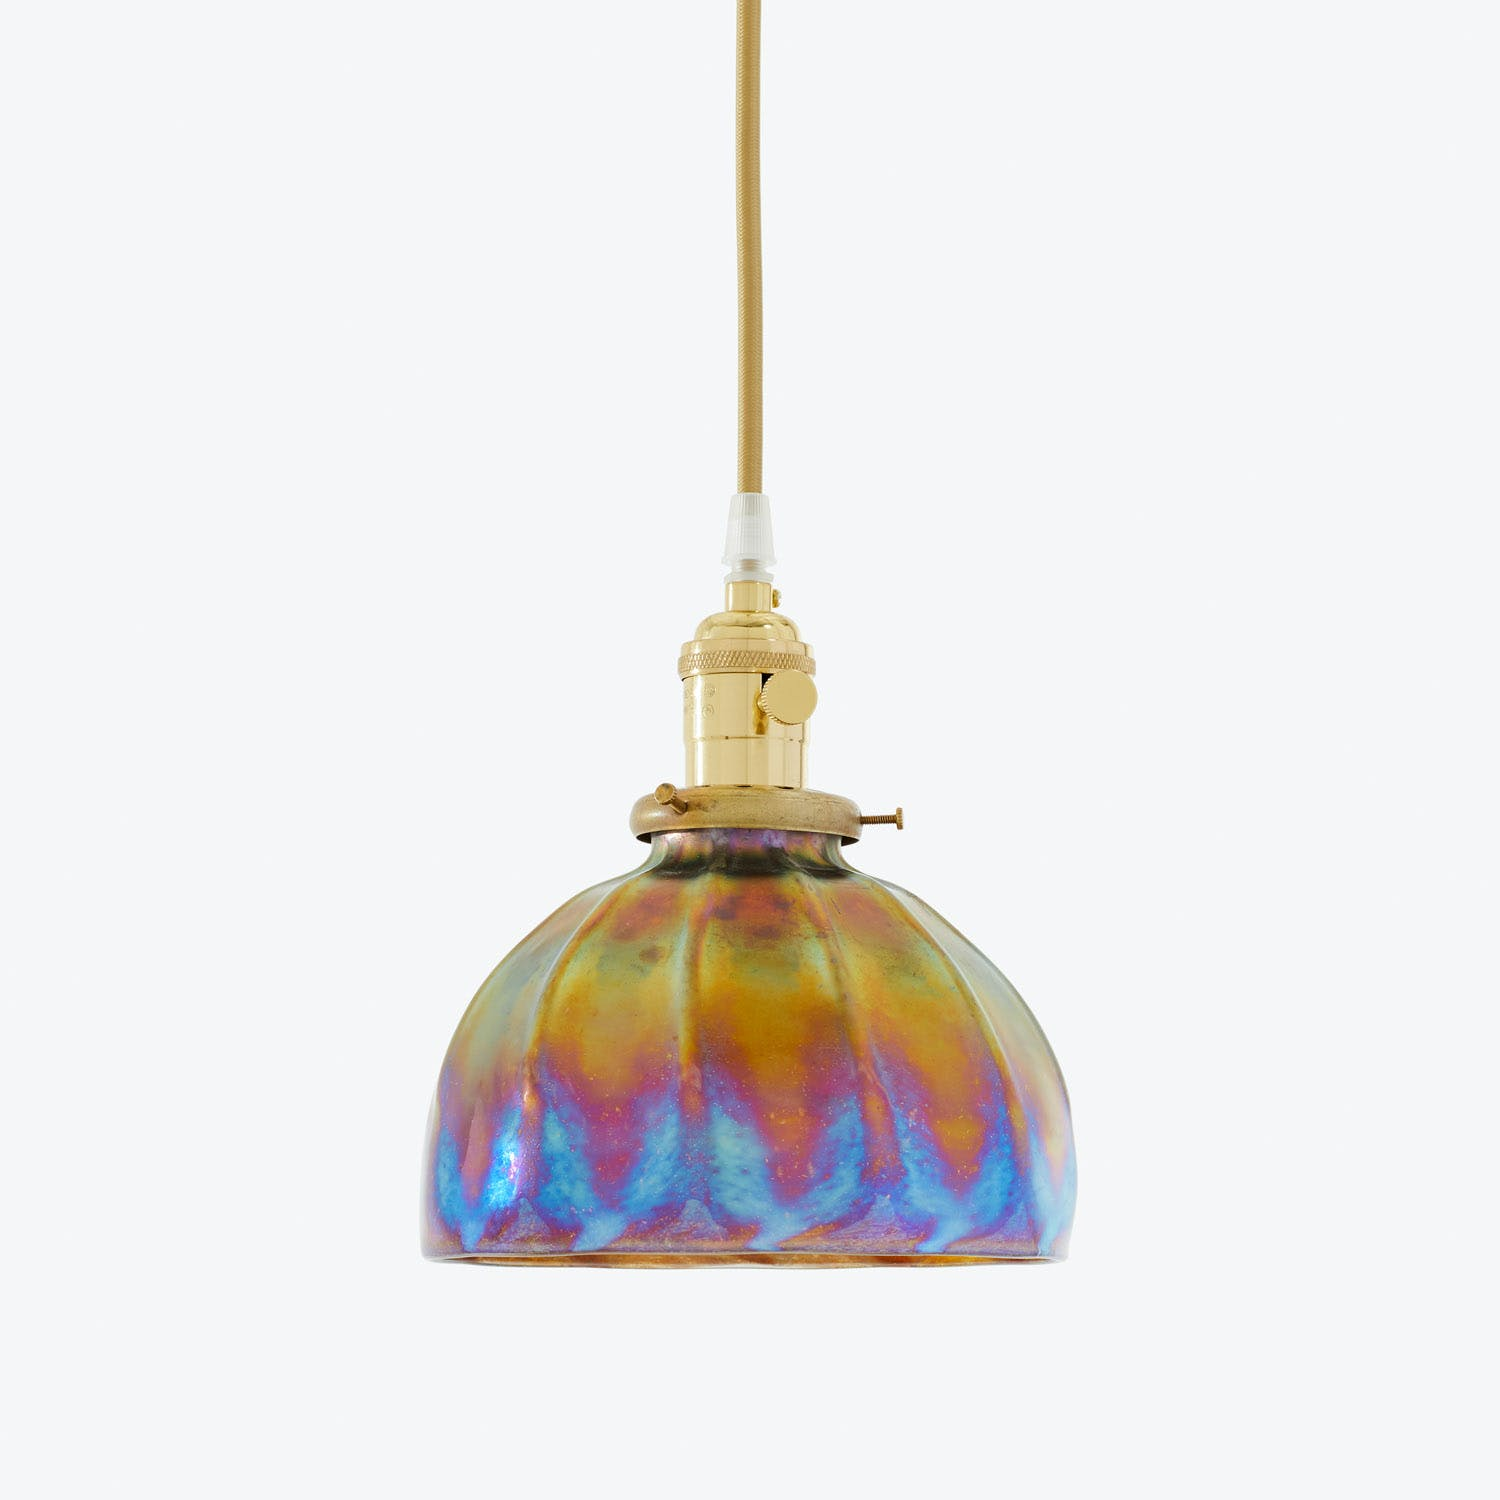 Art Glass Dome Pendant Iridescent Ridges